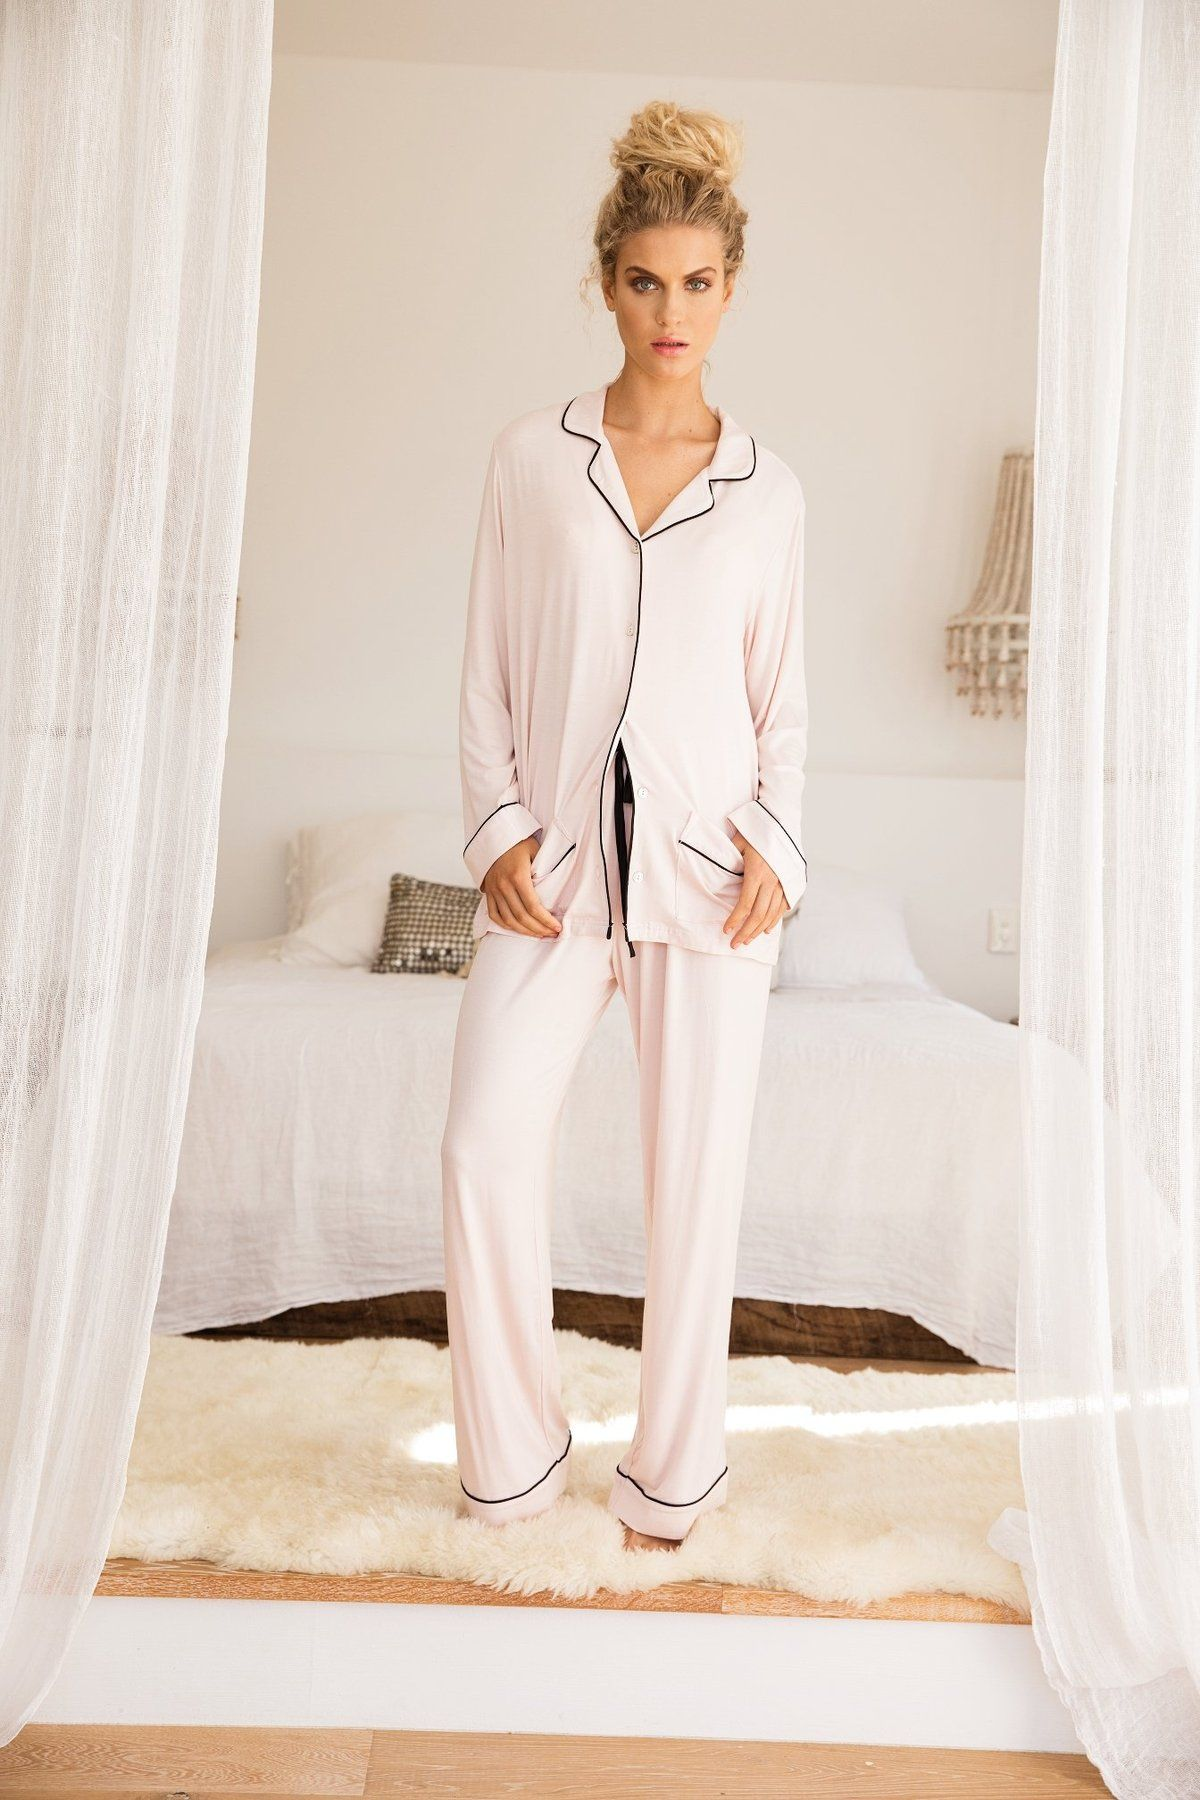 e9829ff2e38 The Abigail Long PJ Set in blush pink features black piping details along  the top collar and pockets